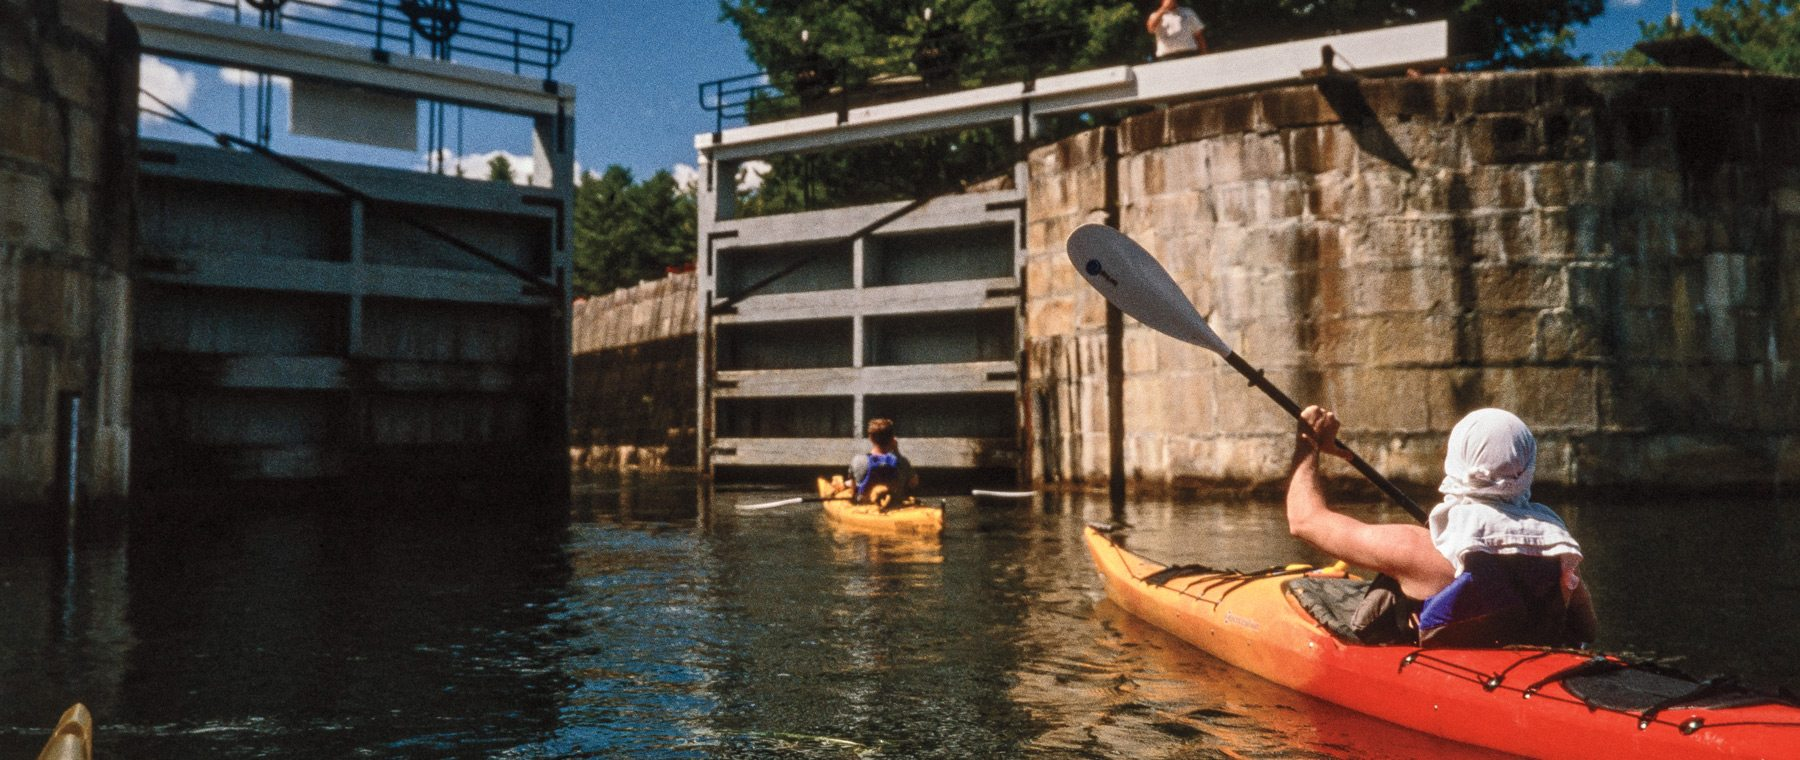 New ways to explore Ottawa's waterway — The Rideau Canal